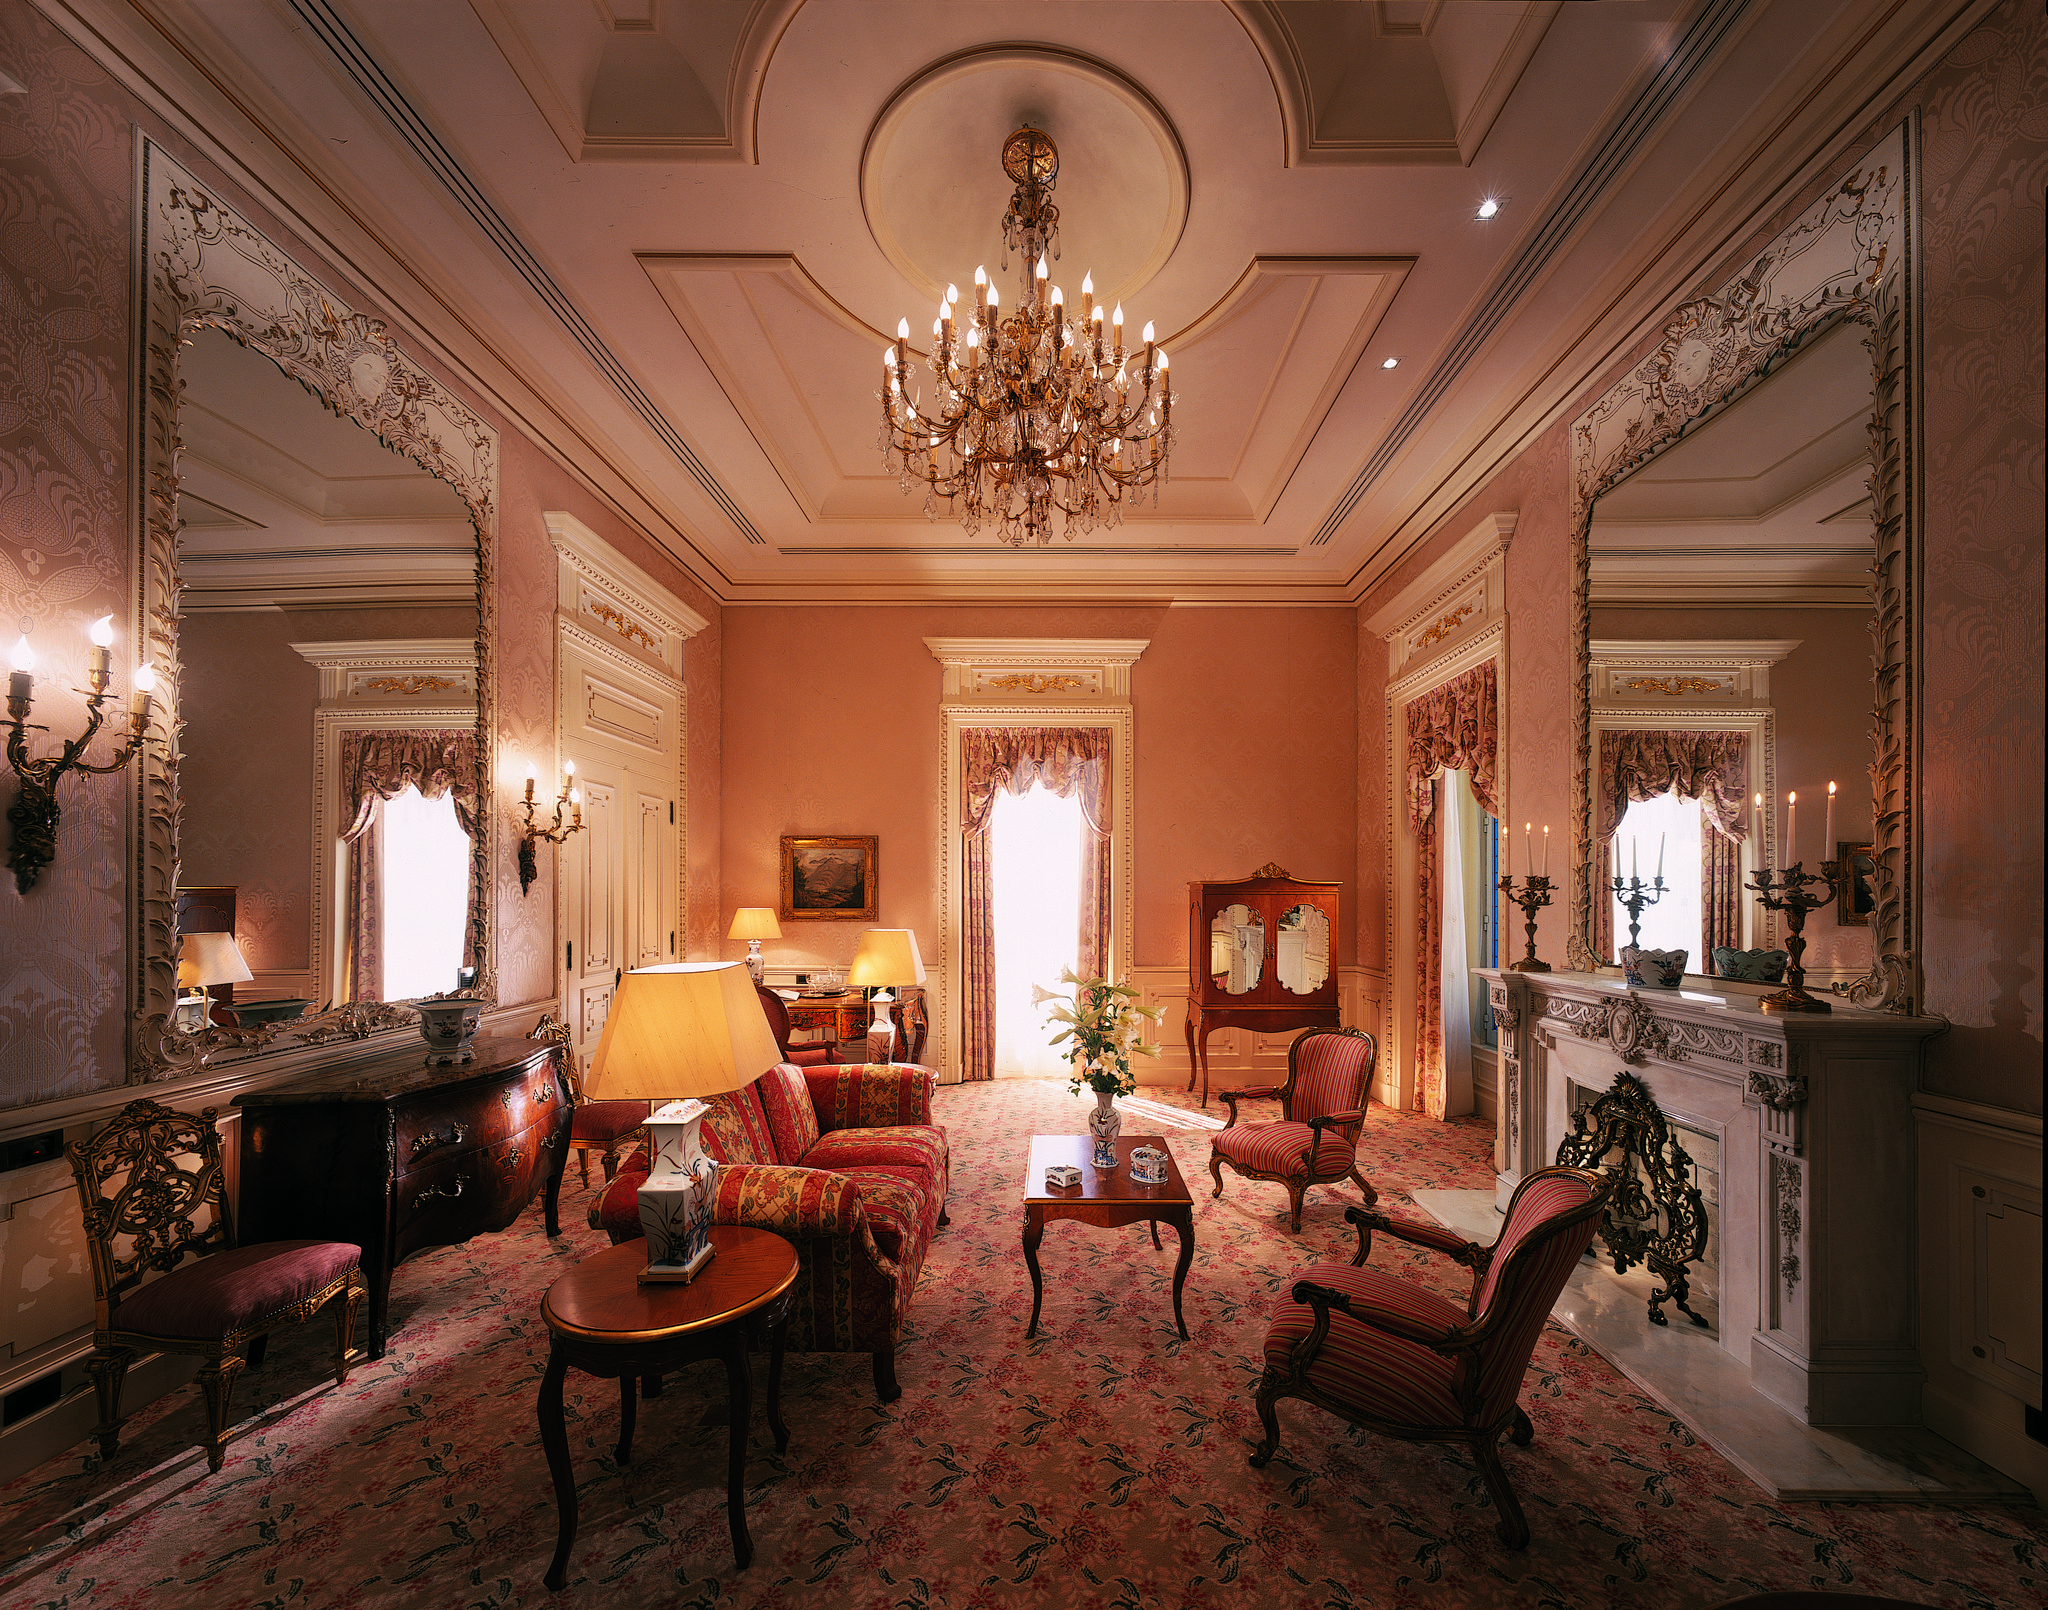 Olissippo Lapa Palace - Royal Suite living room.tif